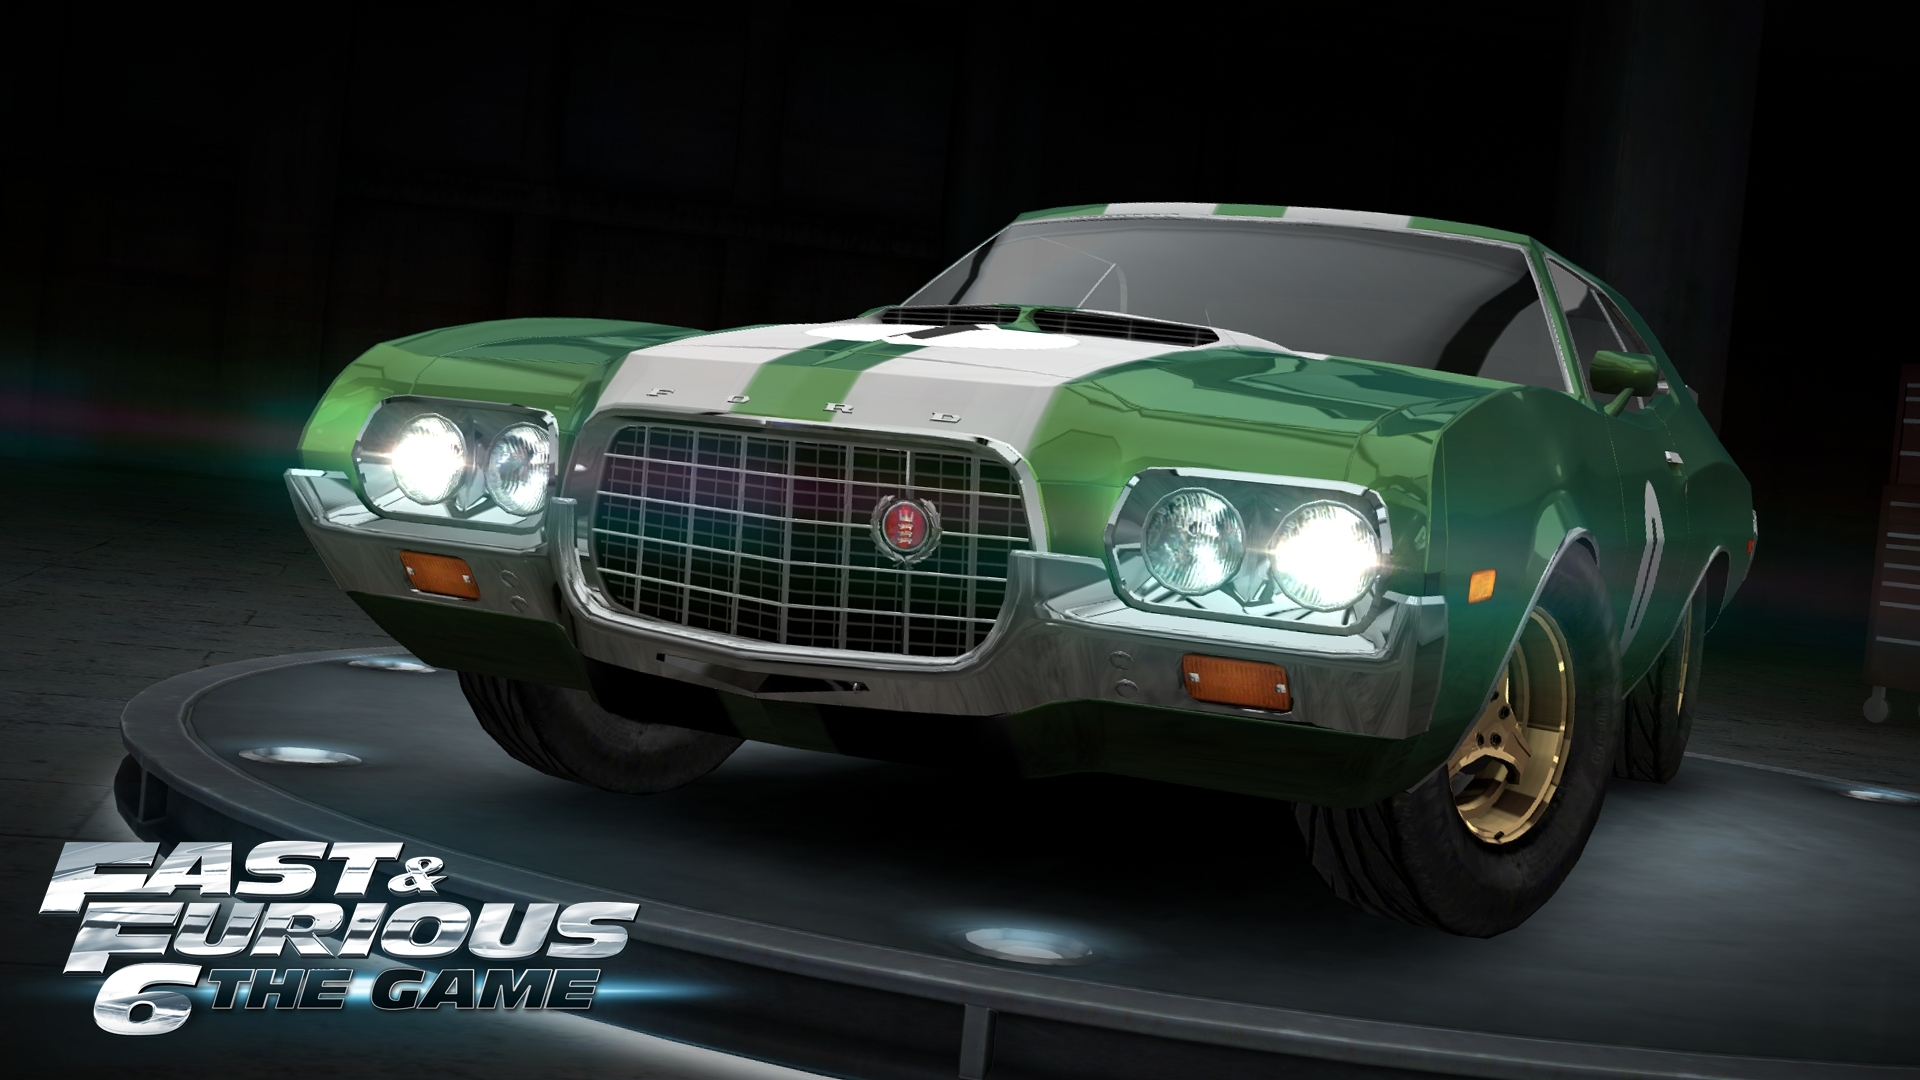 Kabam S Fast Furious 6 The Game Breaks Company Record As Its